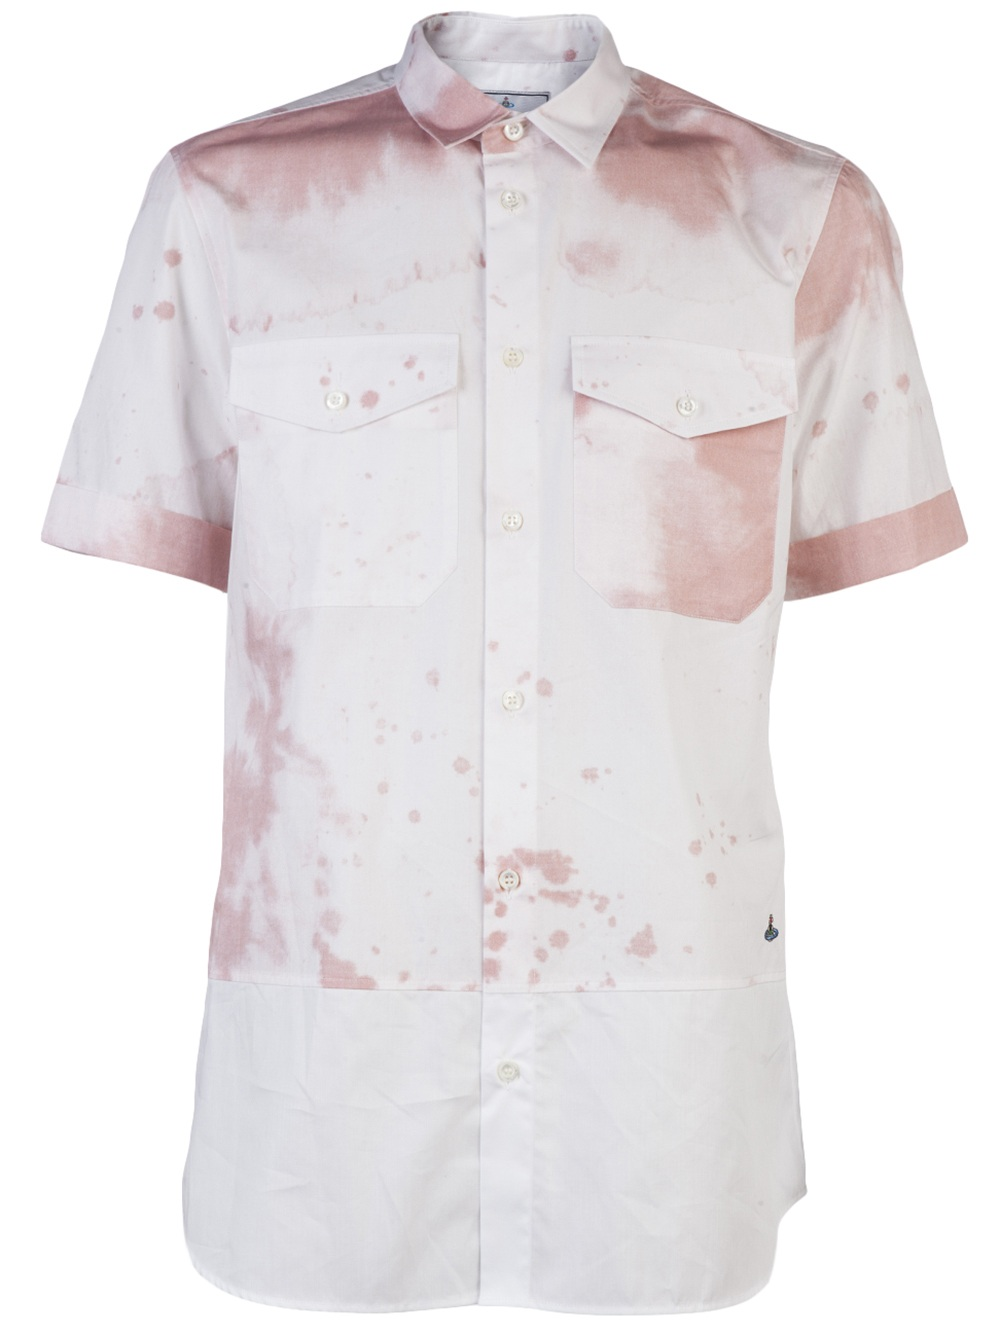 Vivienne westwood wine stain shirt in purple for men wine for Stain out of white shirt